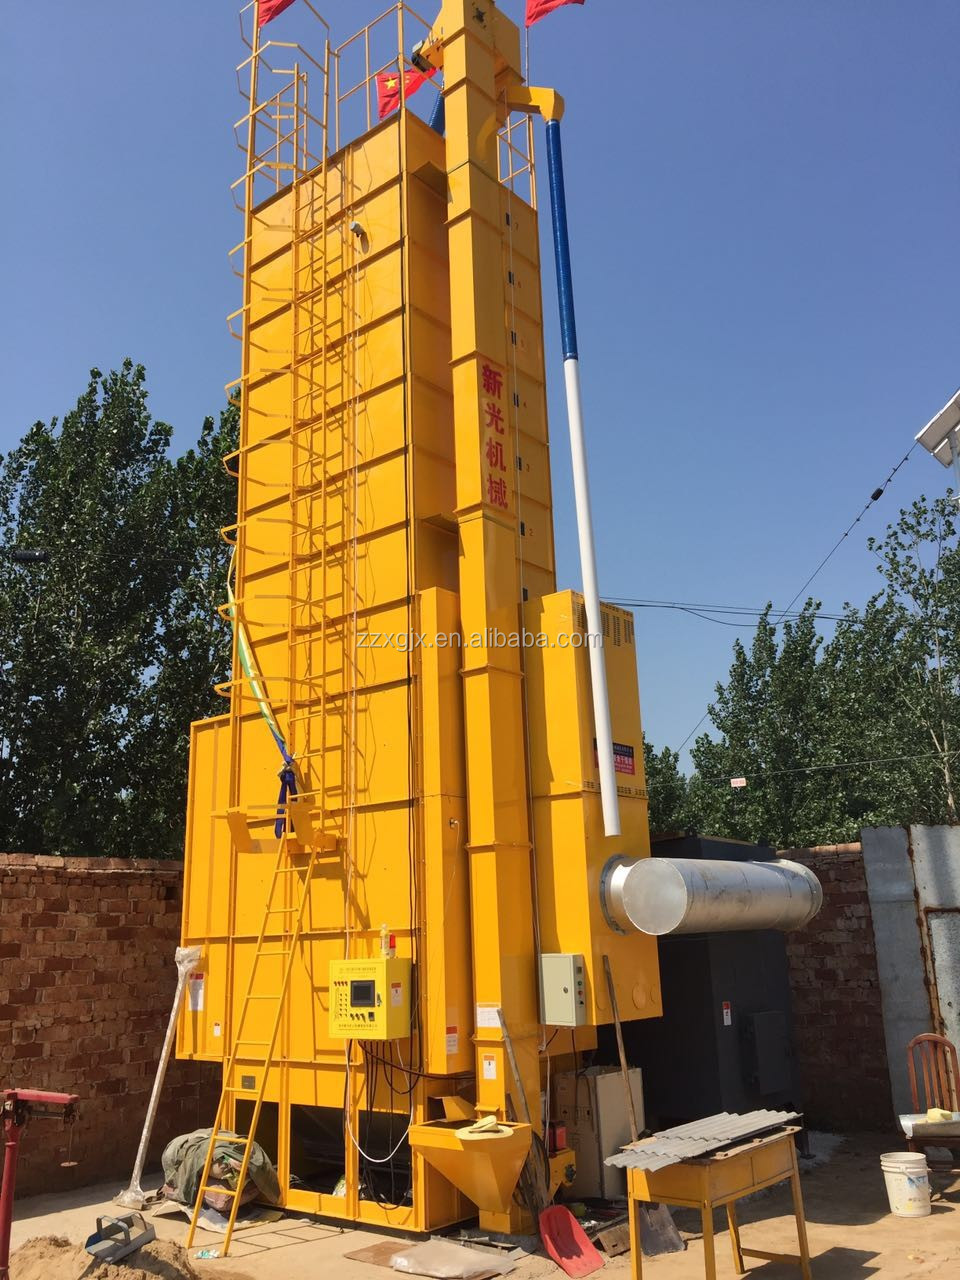 High Output Corn Dryer With Good Drying Efficiency